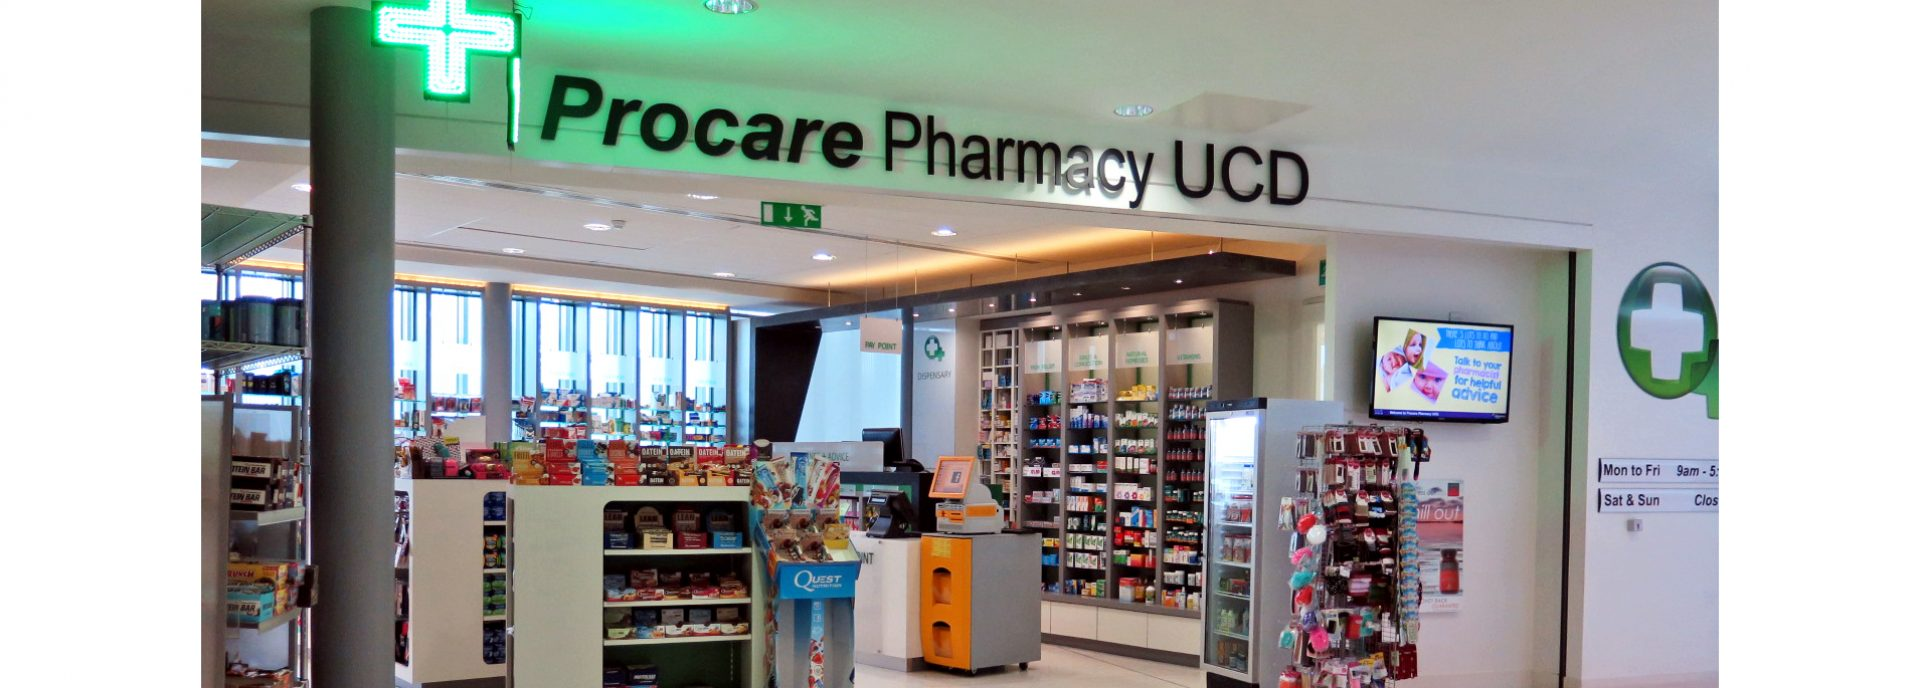 Procare Pharmacy UCD